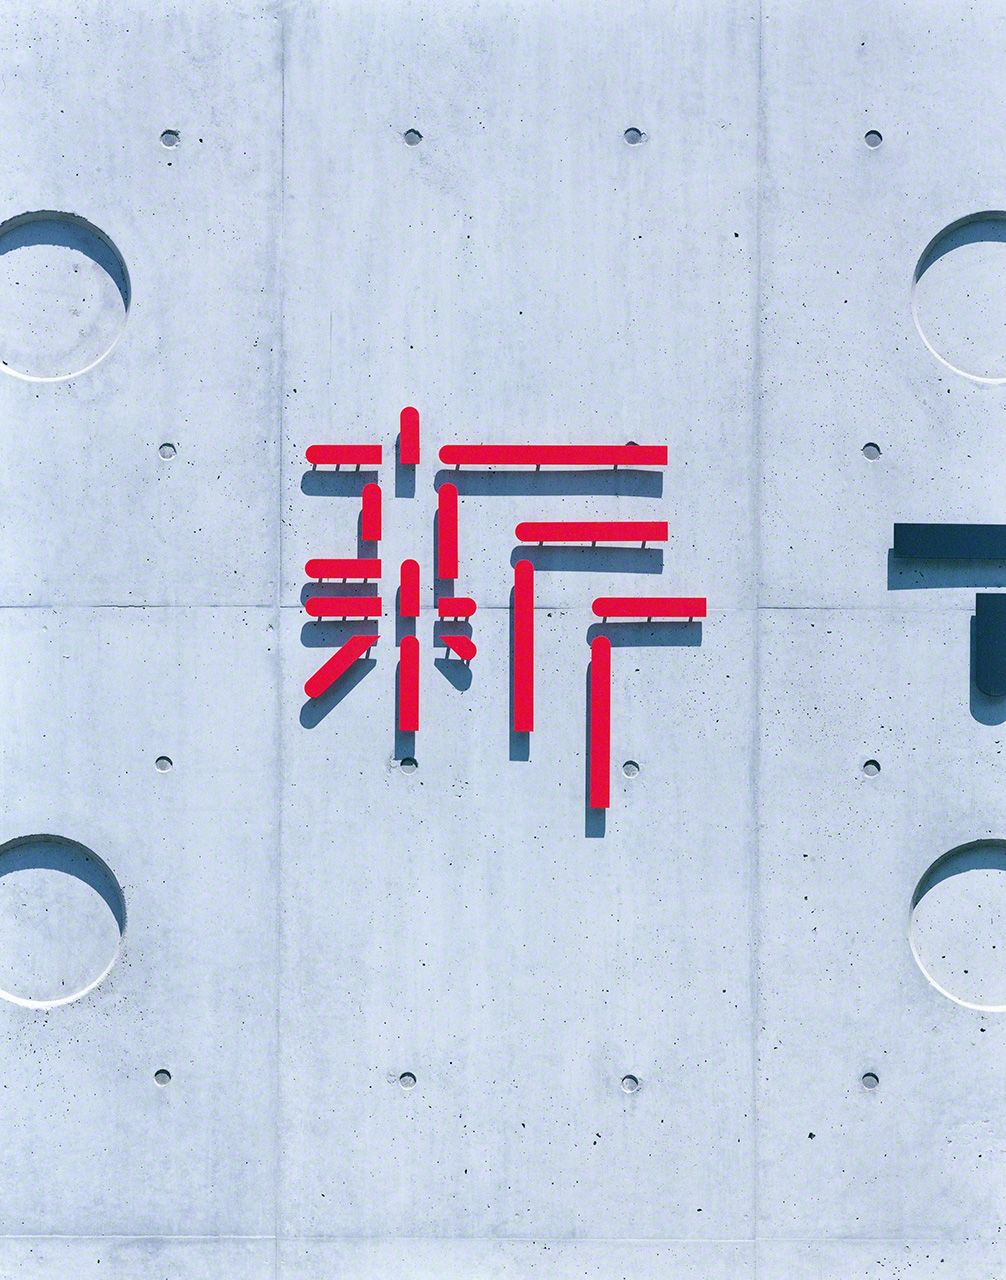 Satō's logo for the National Art Center, Tokyo, in Roppongi.